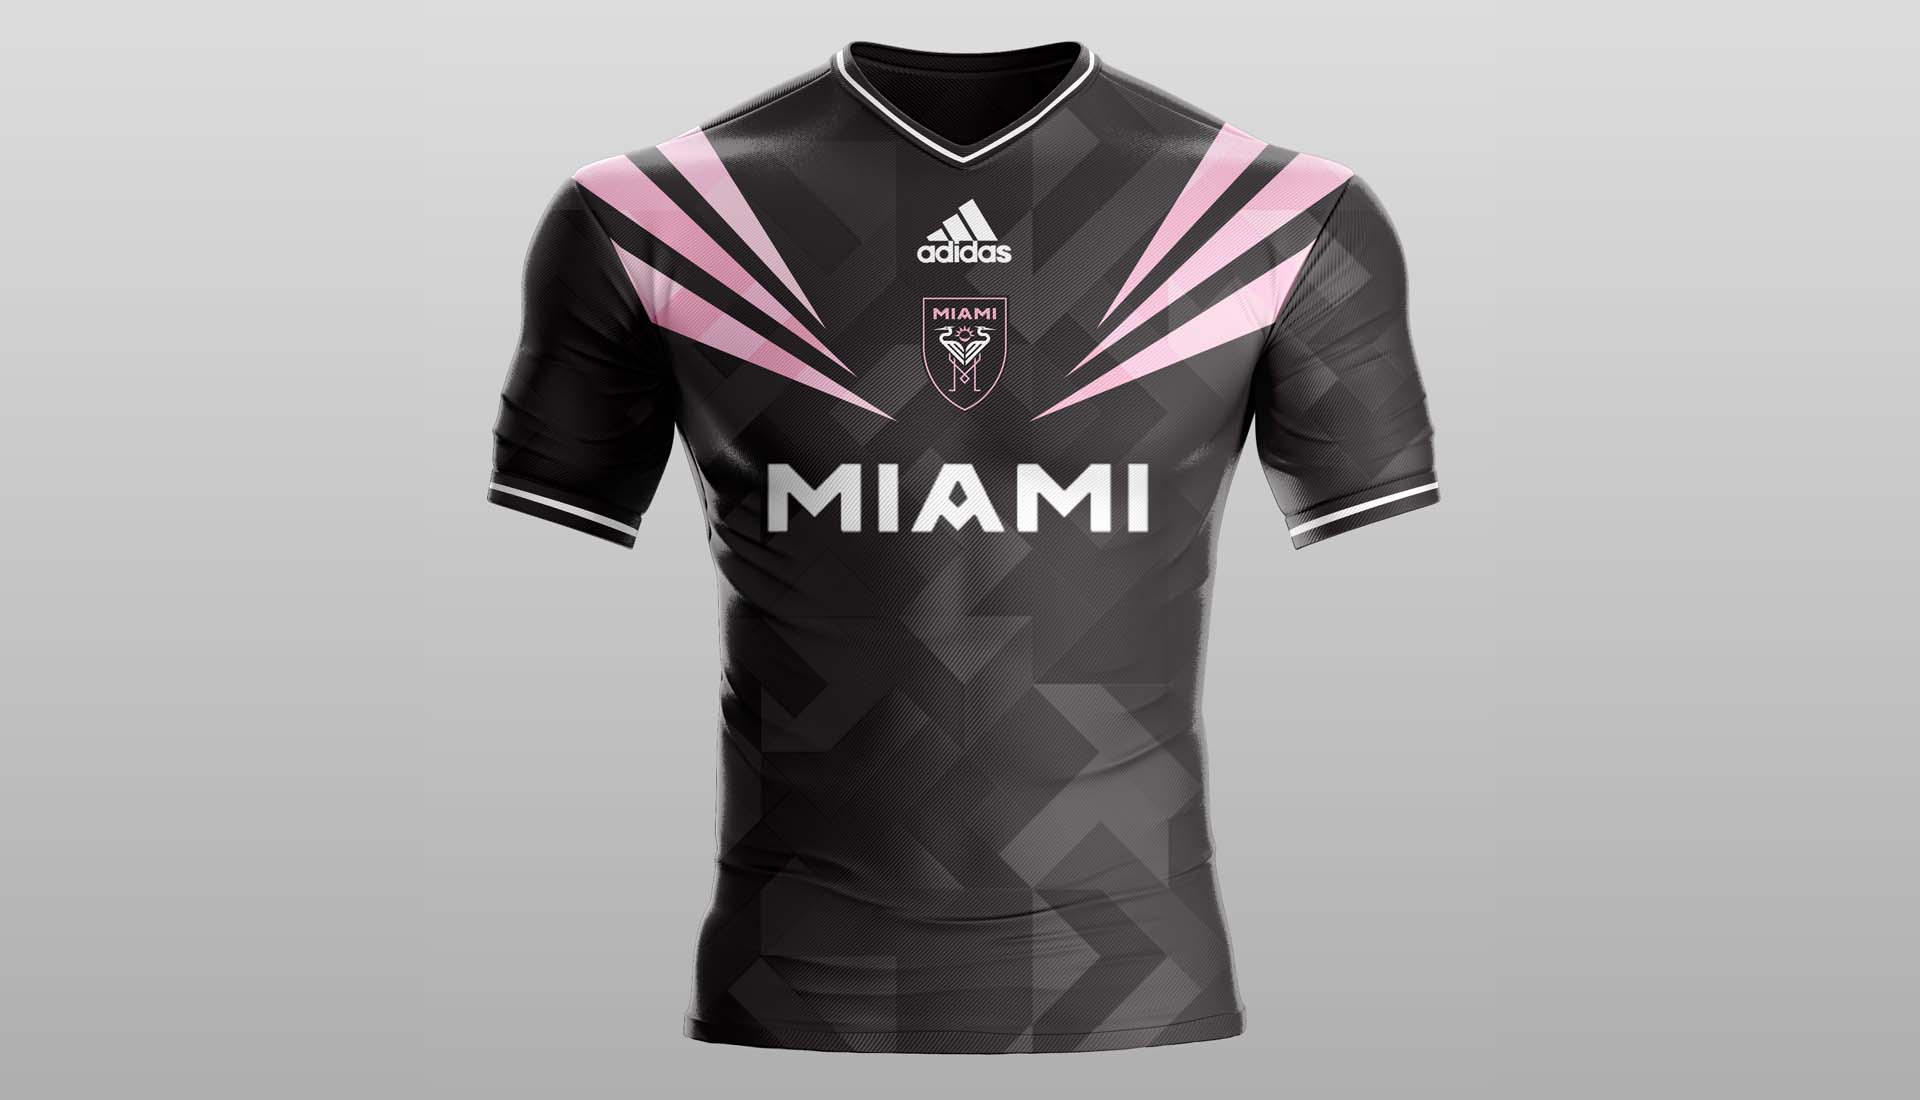 16e6b32b404 The Pick of the Inter Miami CF Concept Kits - SoccerBible.